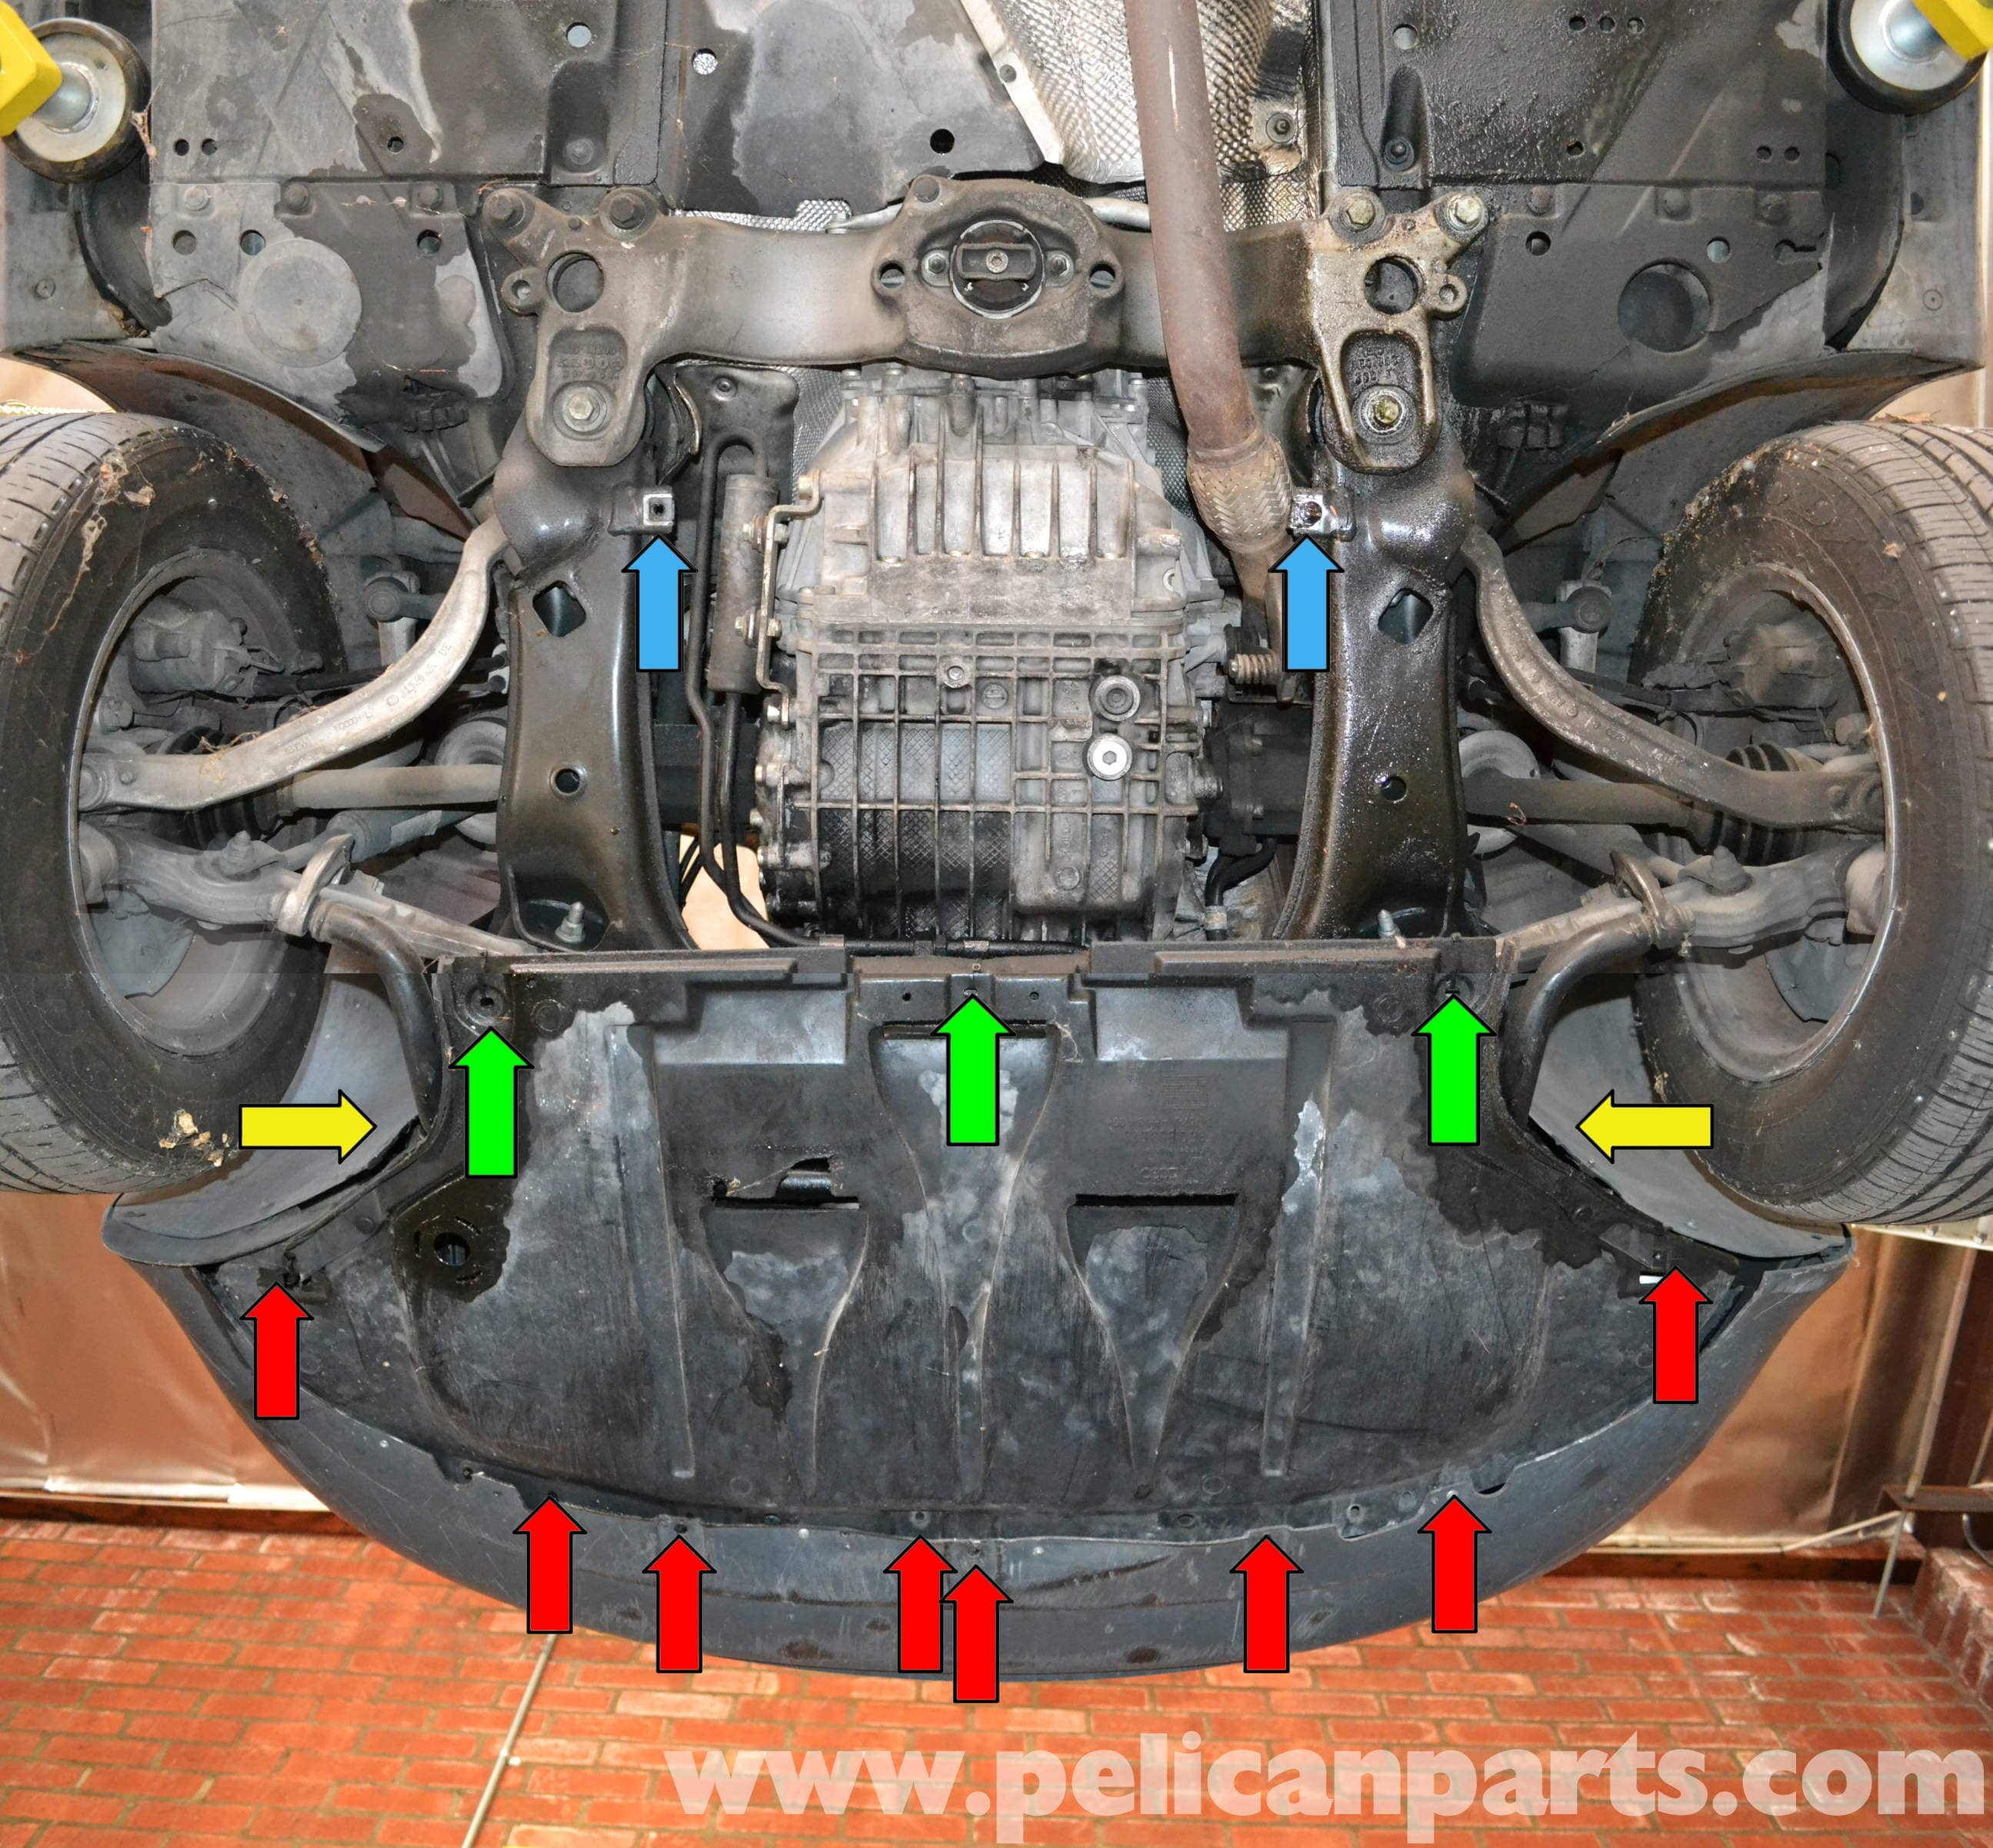 Audi A4 B6 Crankshaft Positioning Sensor Replacement 2002